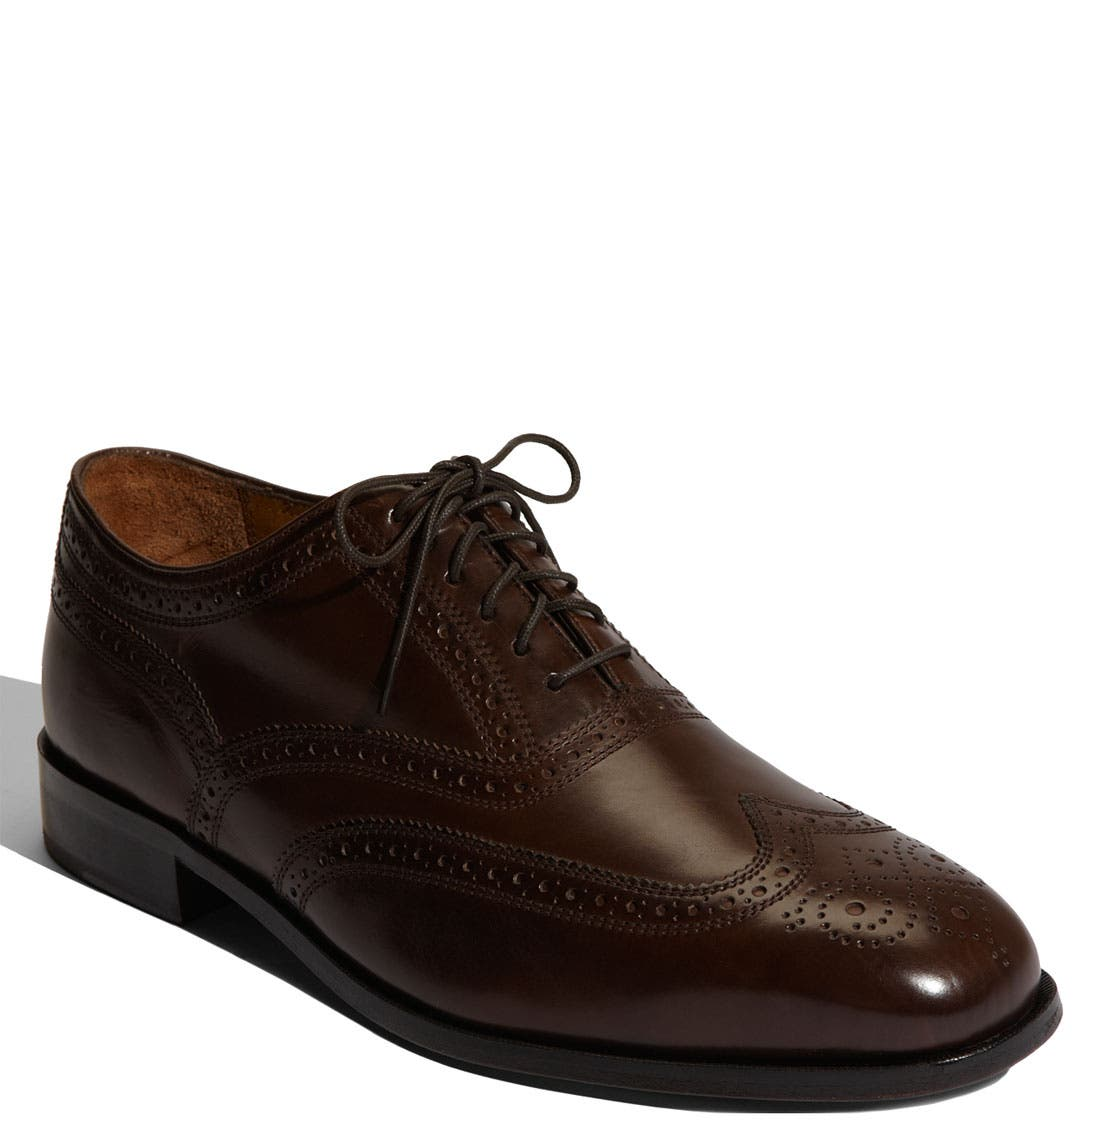 Main Image - Florsheim 'Marlton' Wingtip Oxford